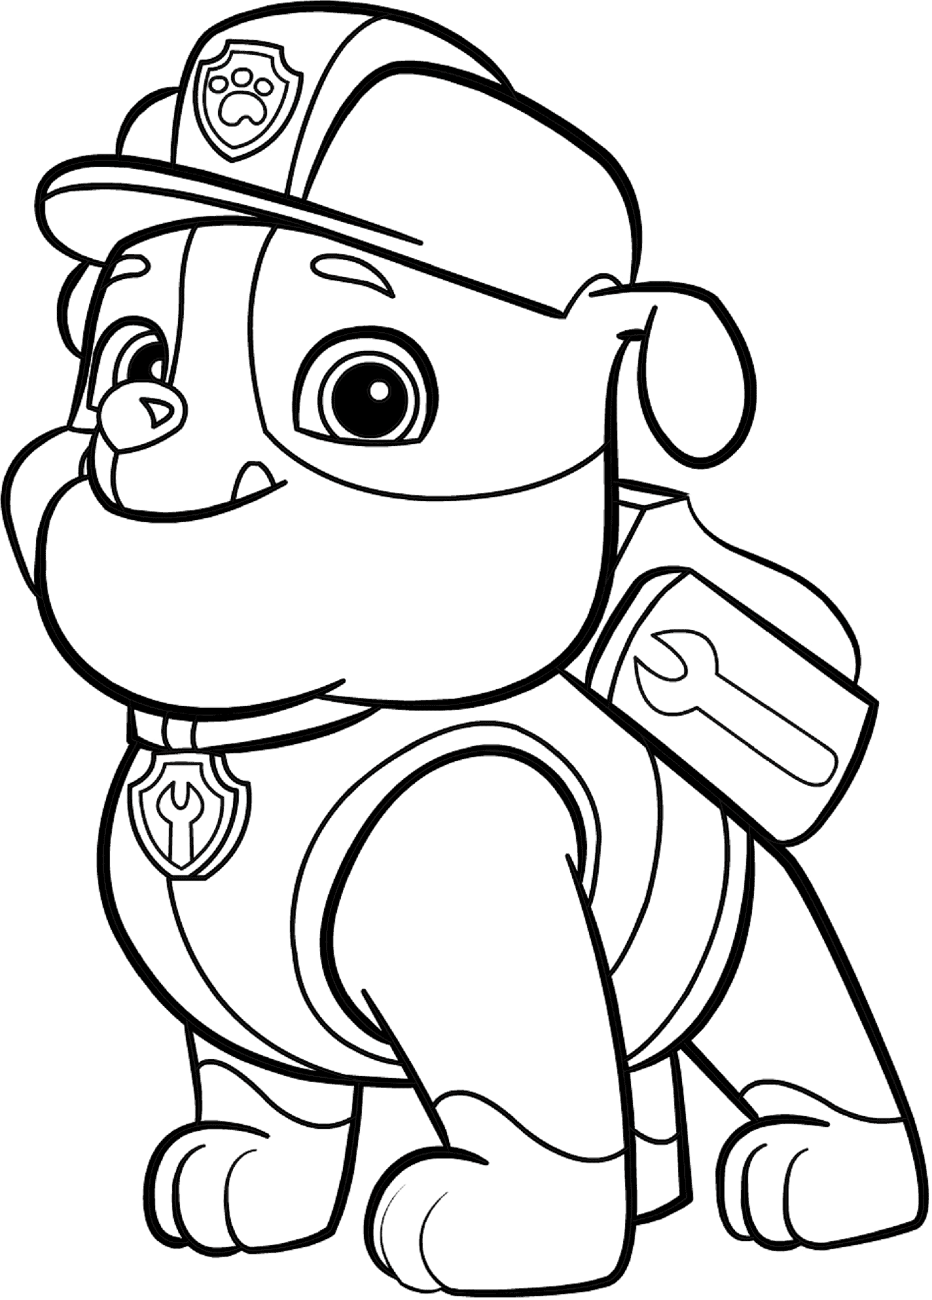 bulldog coloring page construction bulldog rubble coloring page free printable coloring bulldog page